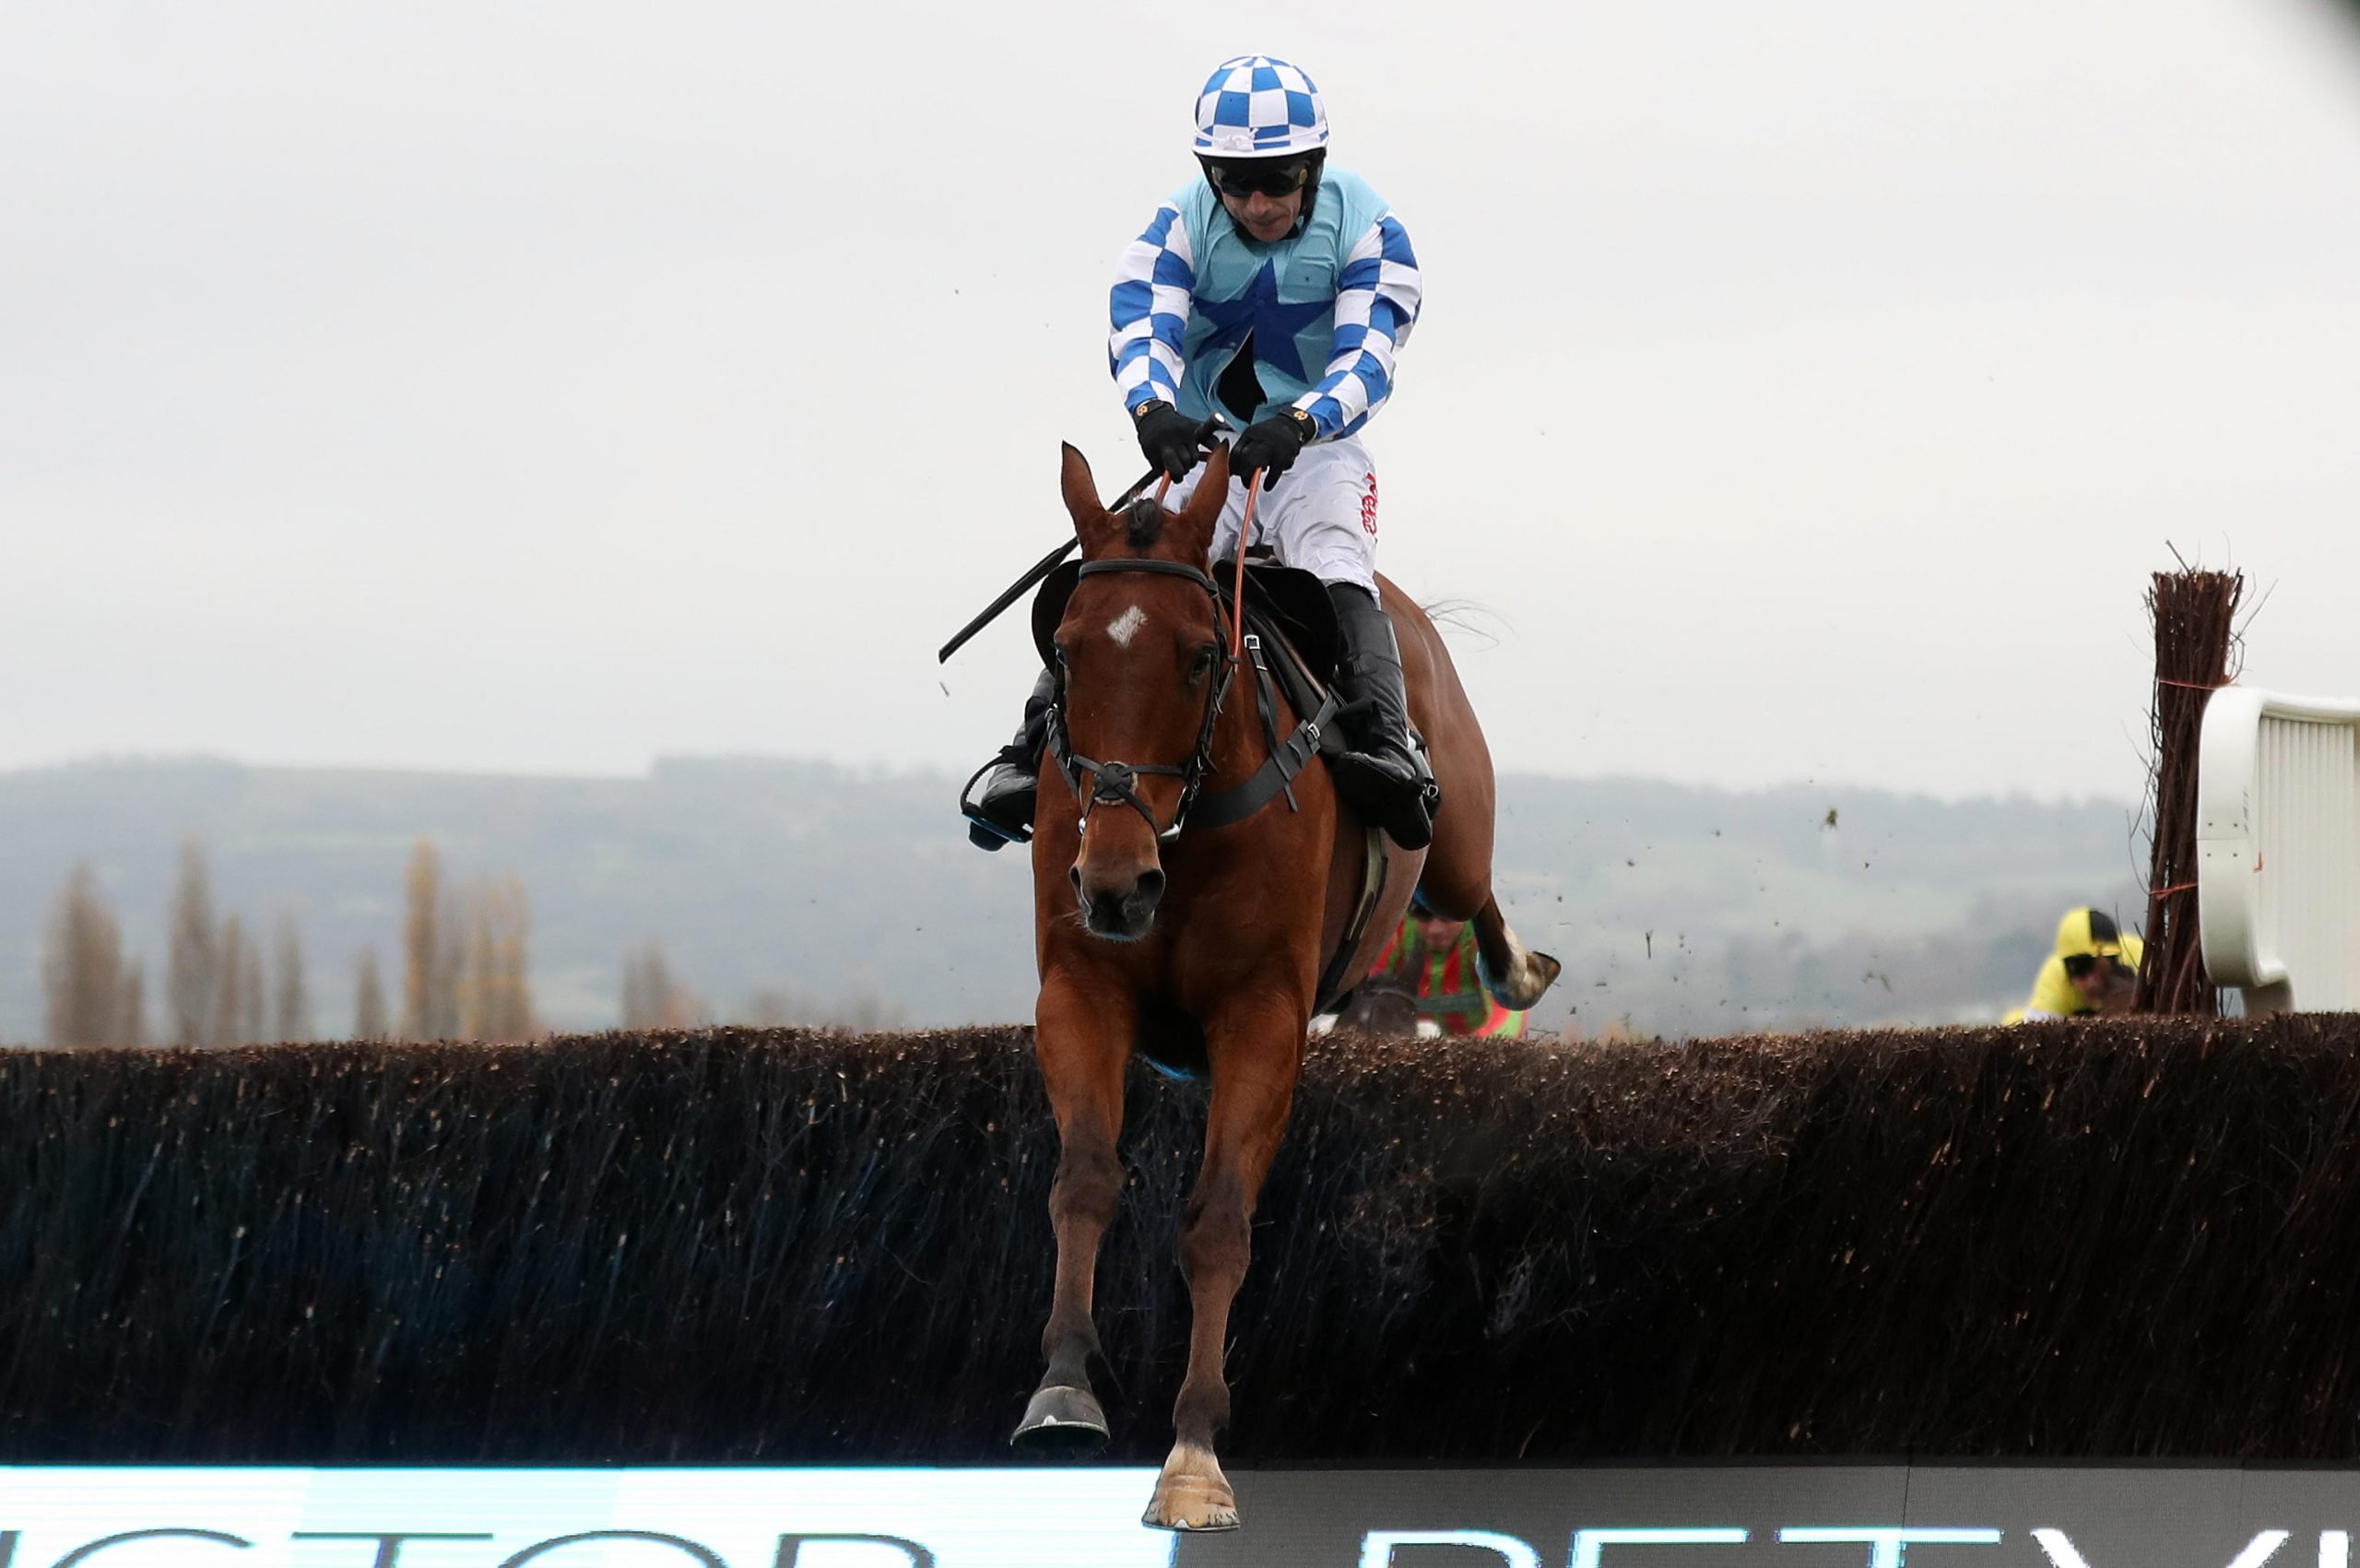 R245D8 Bun Doran ridden by Paddy Brennan on their way to victory in the BetVictor Handicap Chase during day one of the November Meeting at Cheltenham Racecourse.